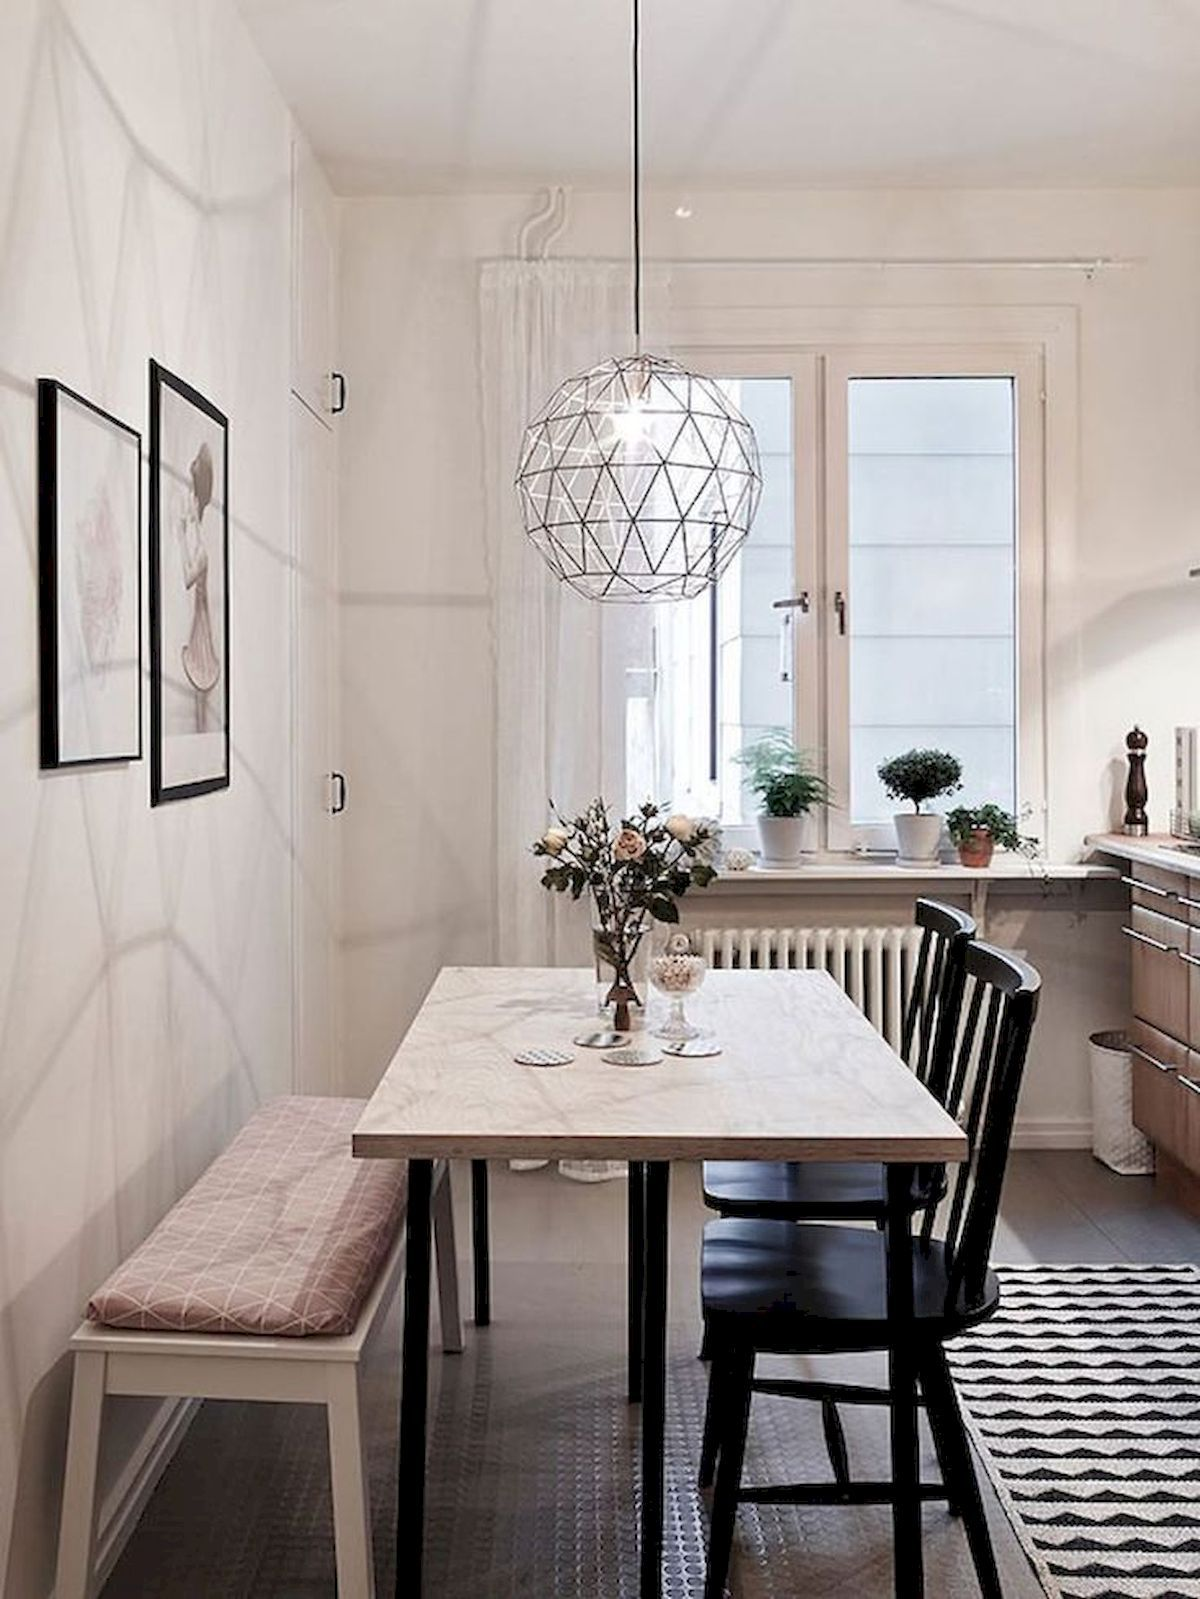 dining room table ideas for small spaces on 52 beautiful small dining room ideas on a budget shairoom com dining room small small dining room table small dining room decor small dining room ideas on a budget